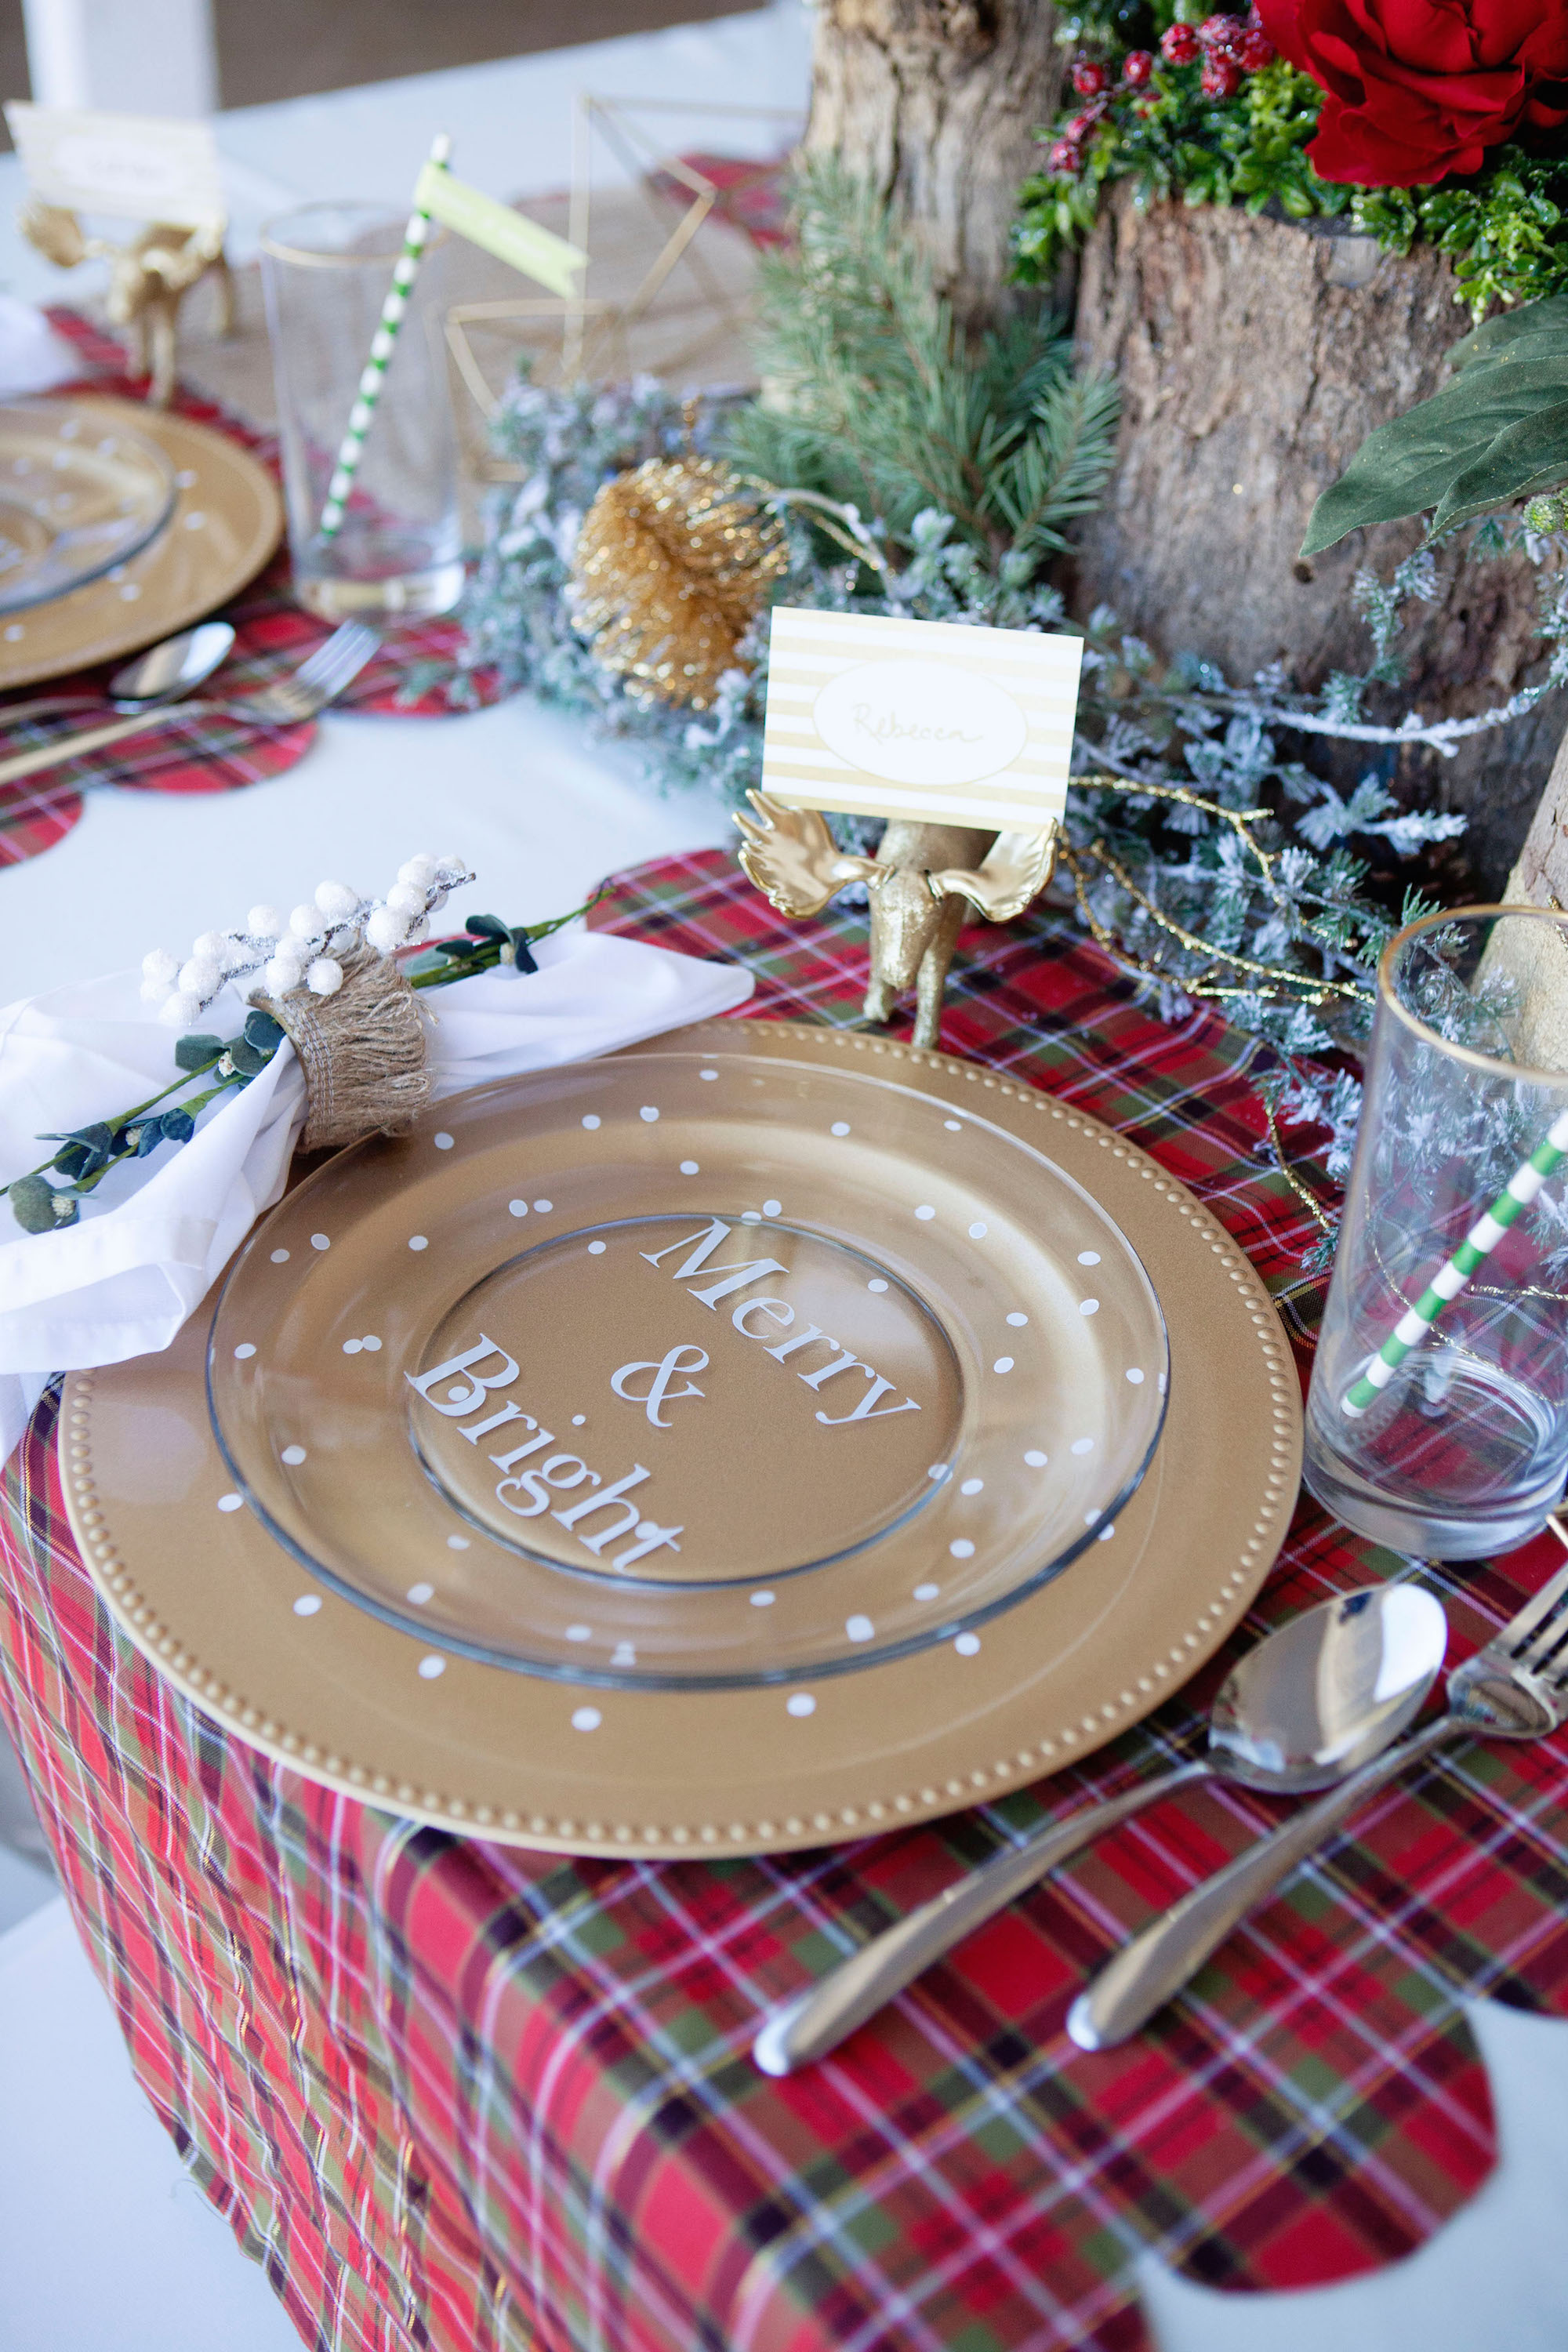 How To Dress Up A Plain Plate And Gold Charger: christmas table dressing